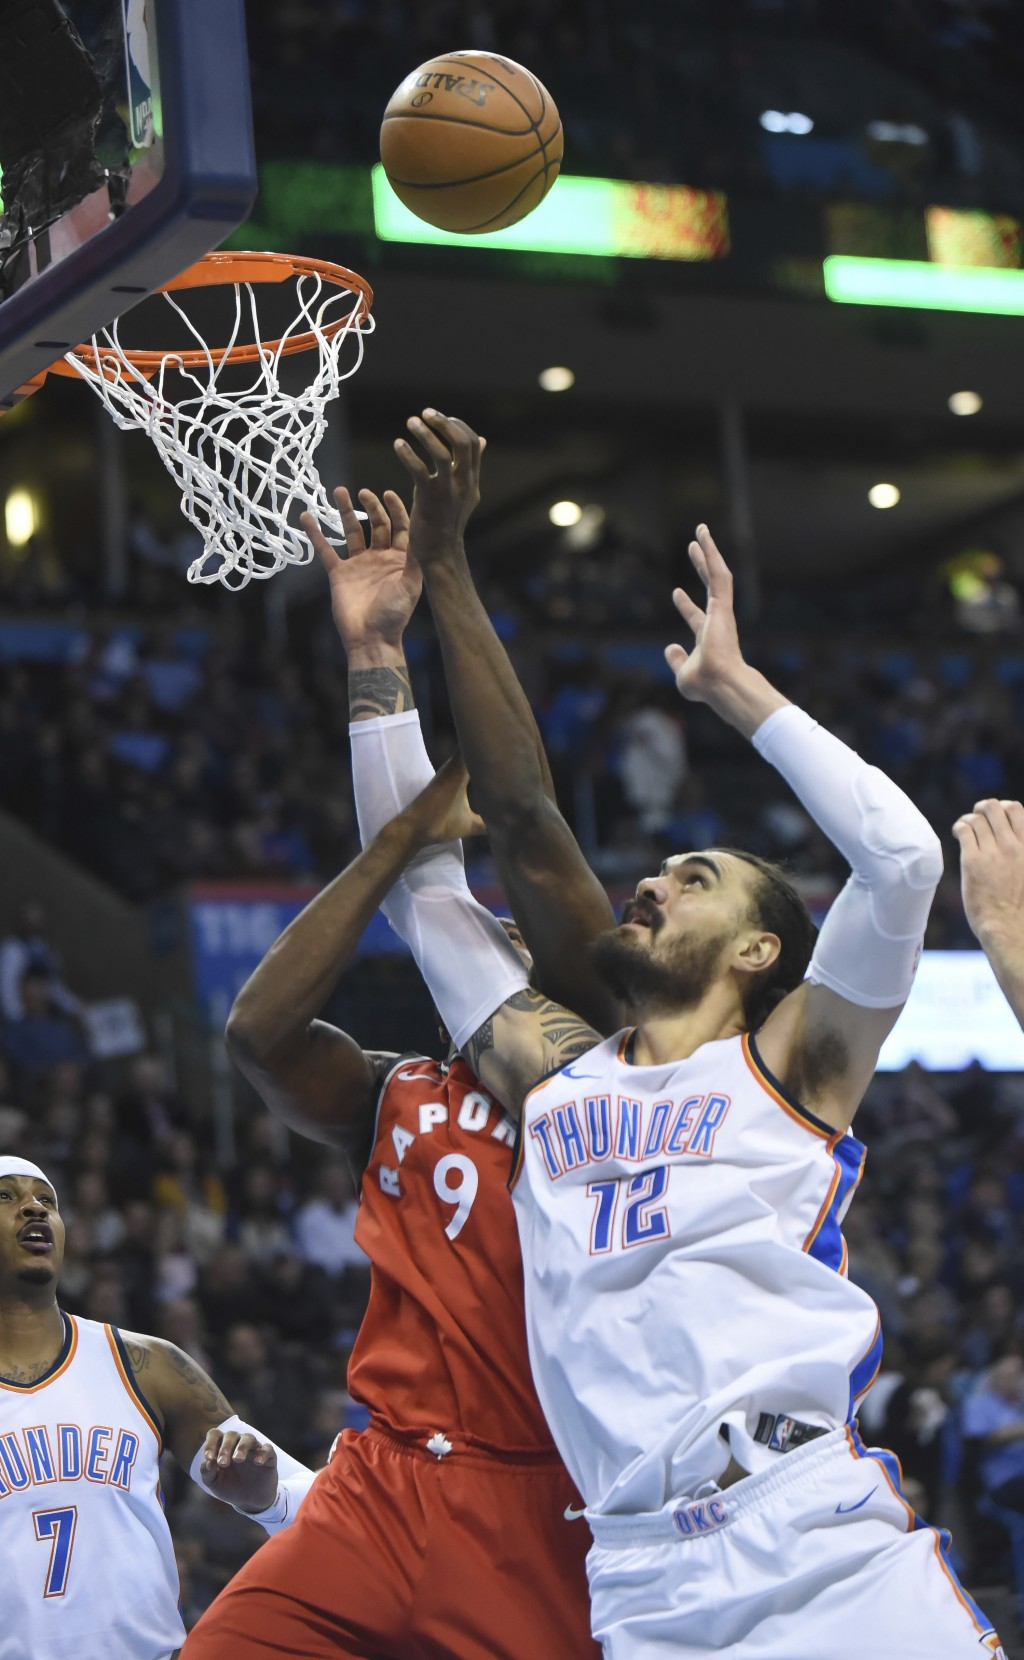 Oklahoma City Thunder's Steven Adams (12) goes up for a rebound next to Toronto Raptors' Serge Ibaka during the first quarter of an NBA basketball gam...